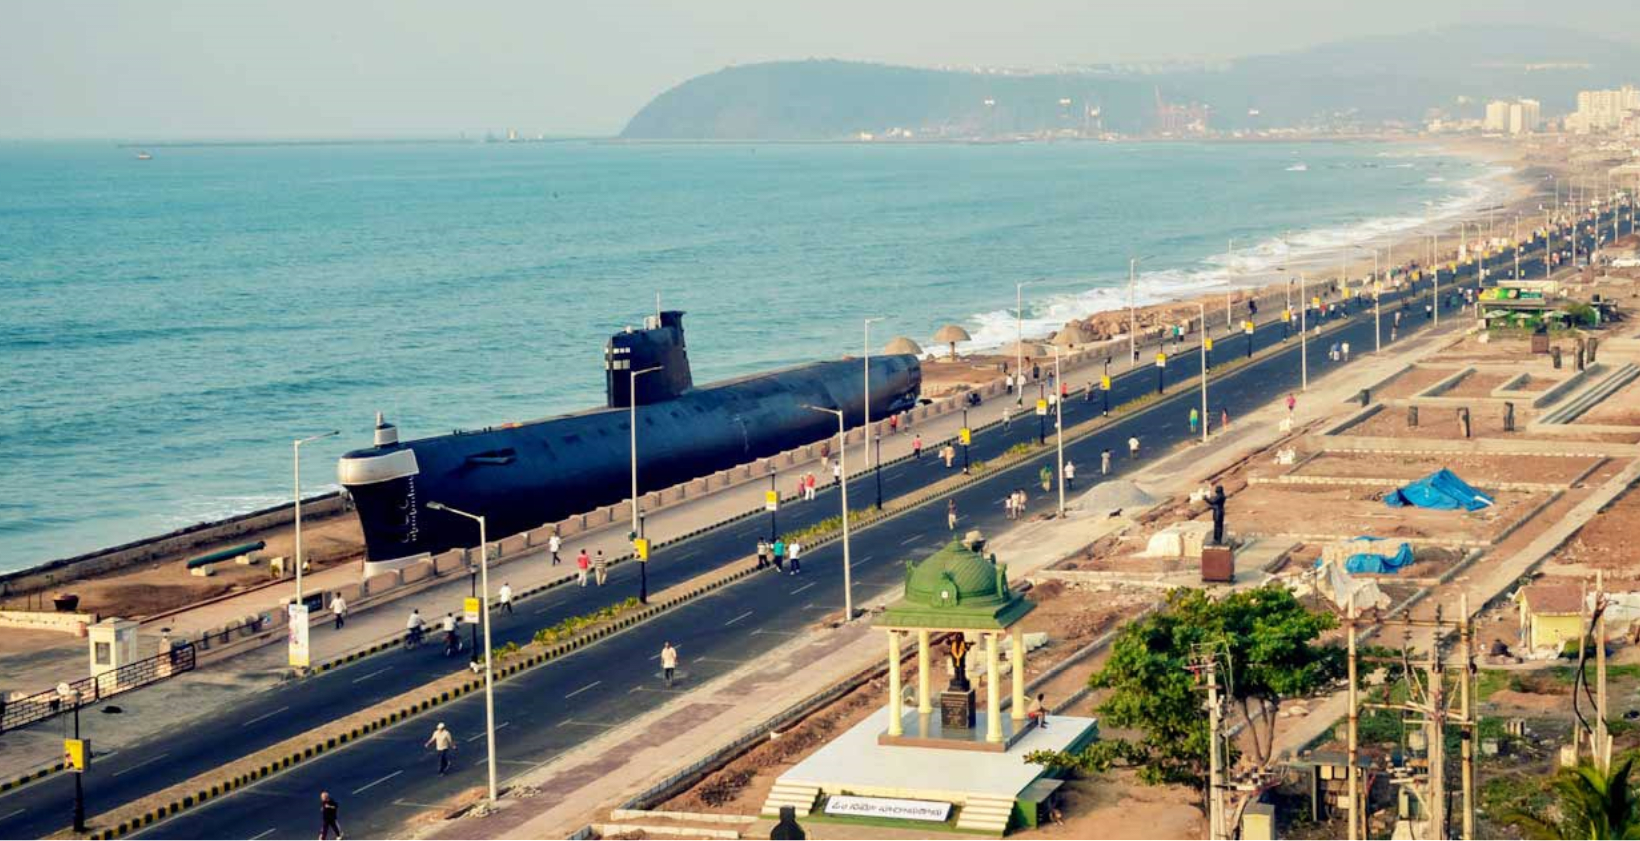 Hire a car and driver in Visakhapatnam